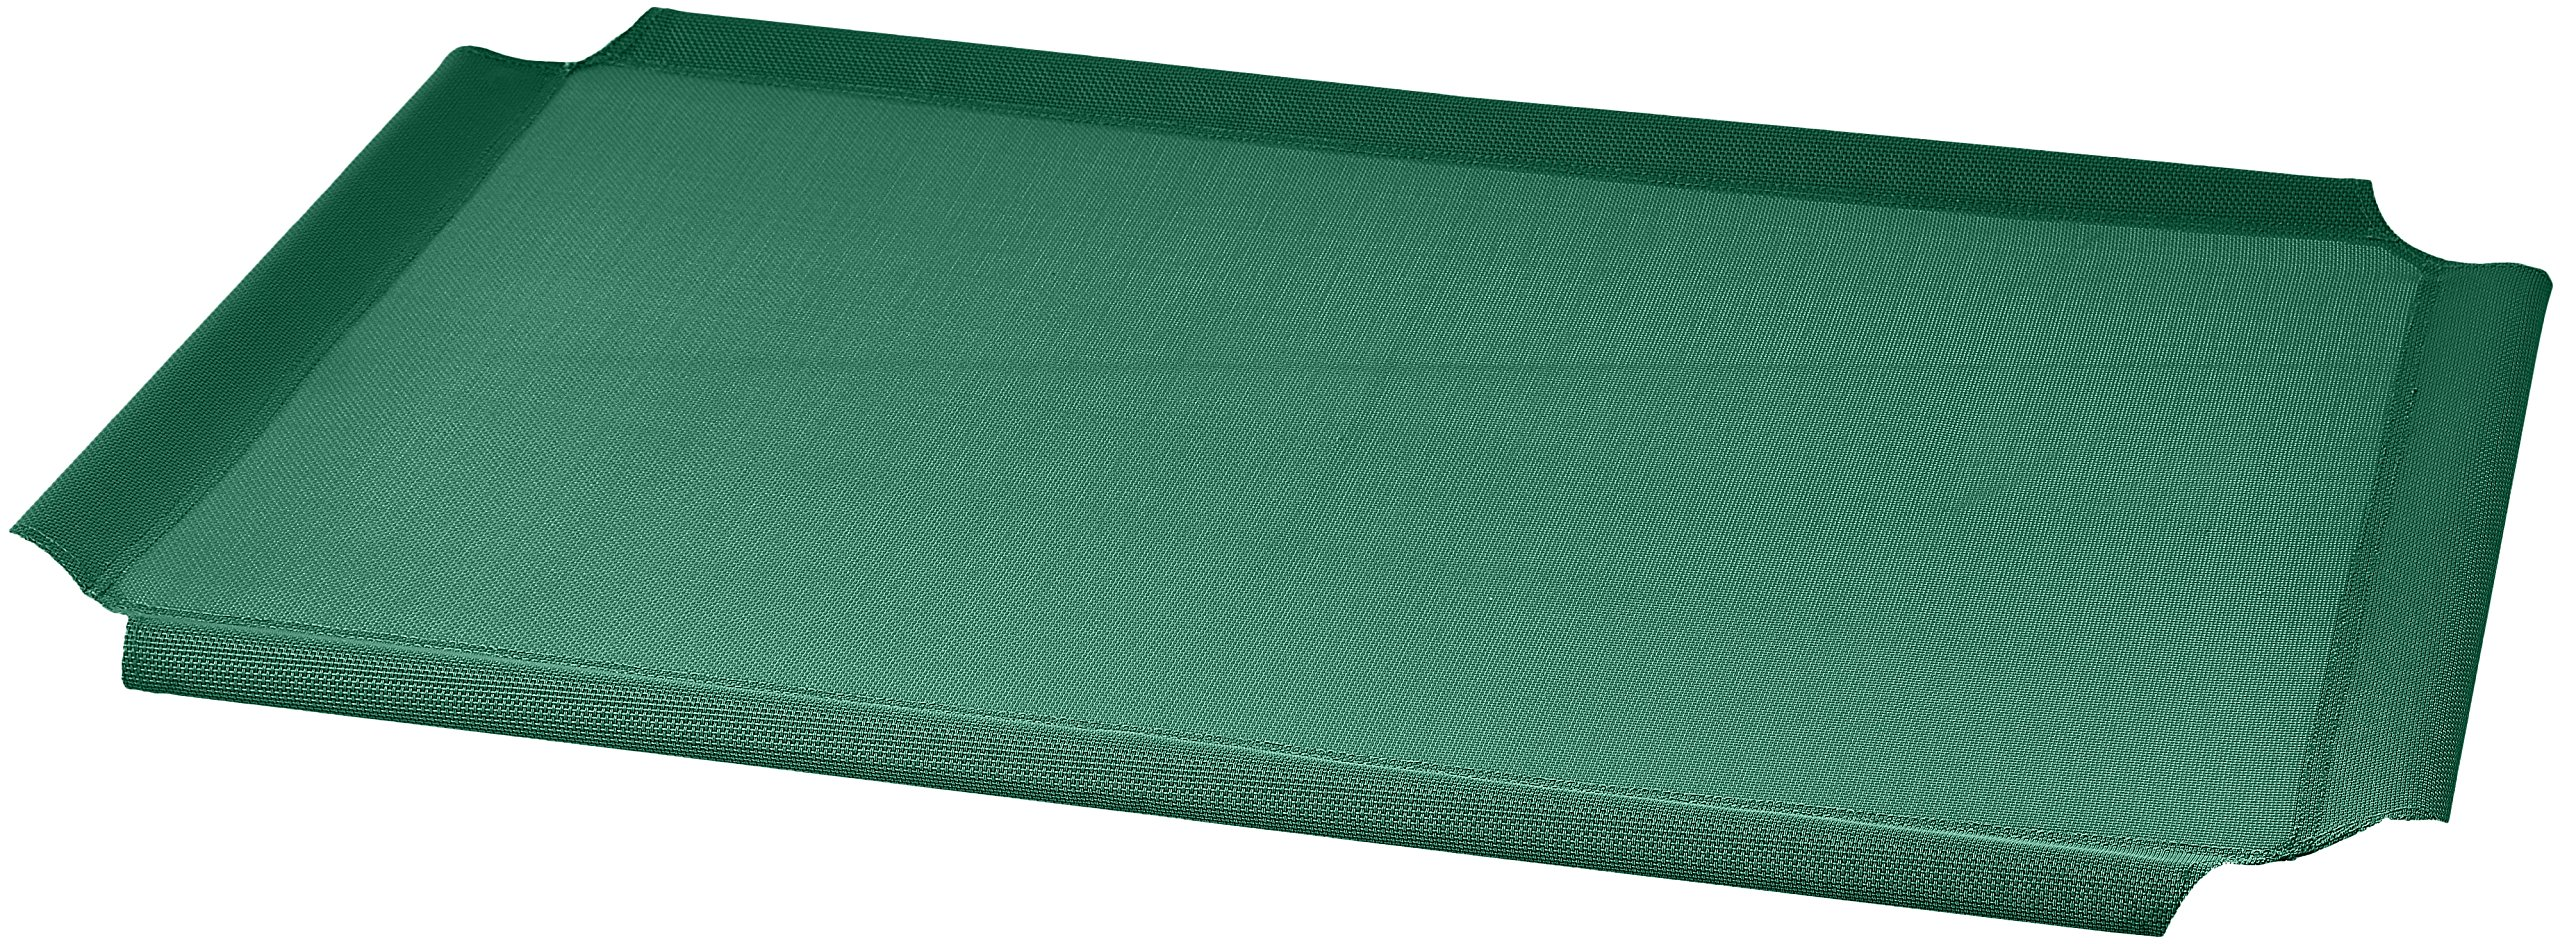 AmazonBasics Elevated Cooling Pet Bed Replacement Cover, M, Green